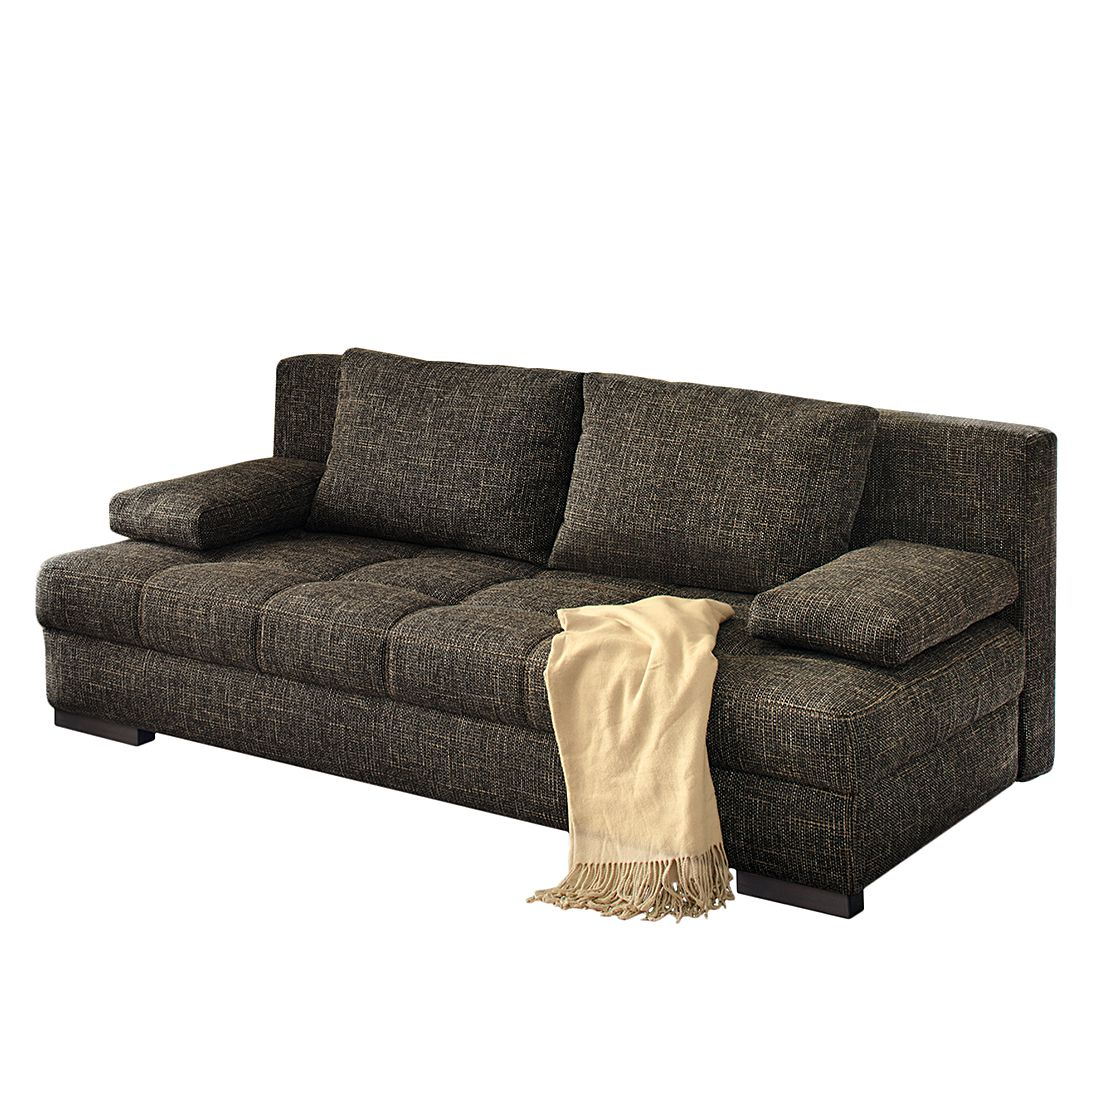 Marron guide d 39 achat for Schlafsofa 3m